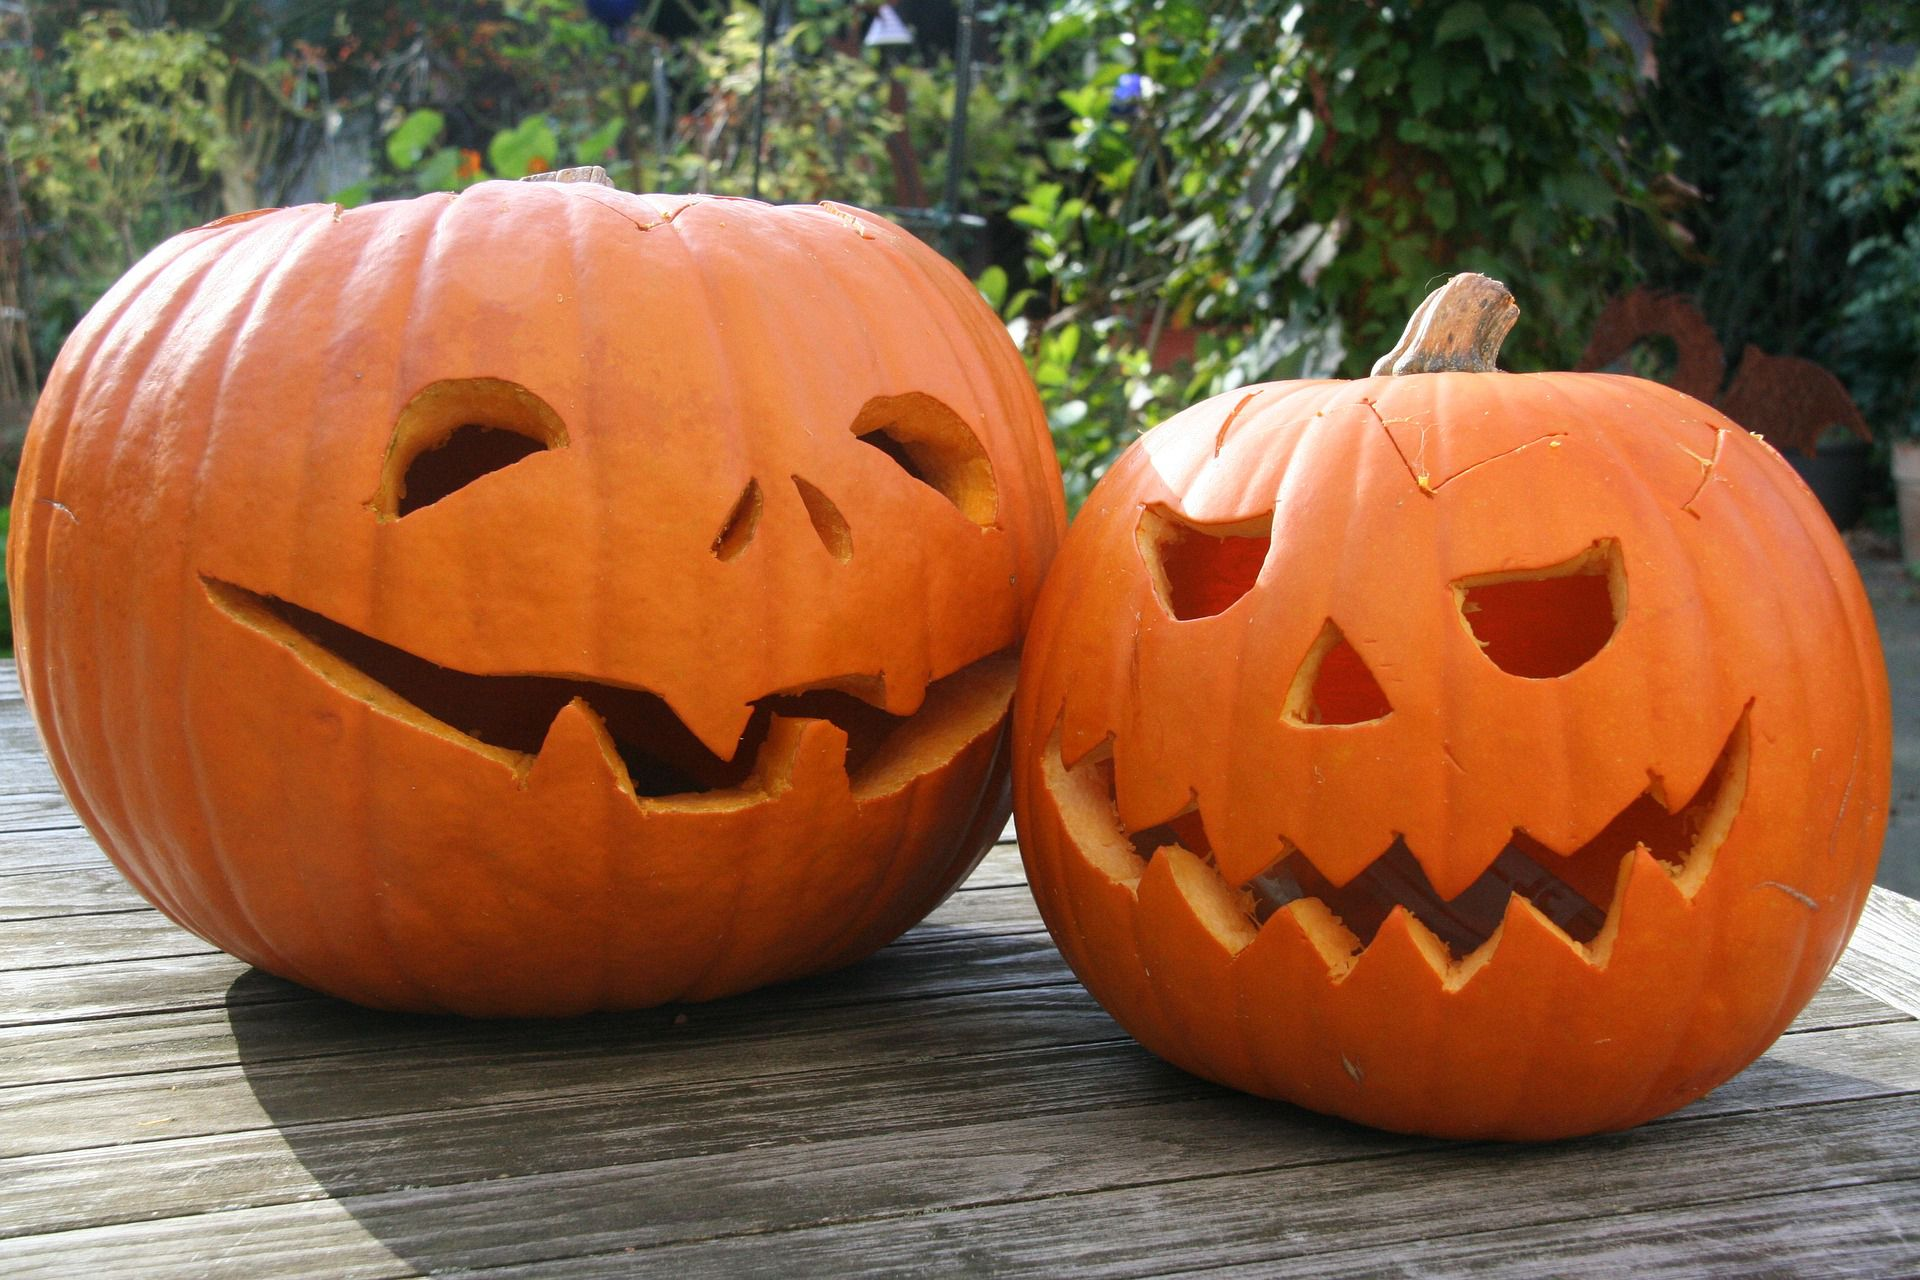 17 Places to Find Free Pumpkin Carving Patterns Online